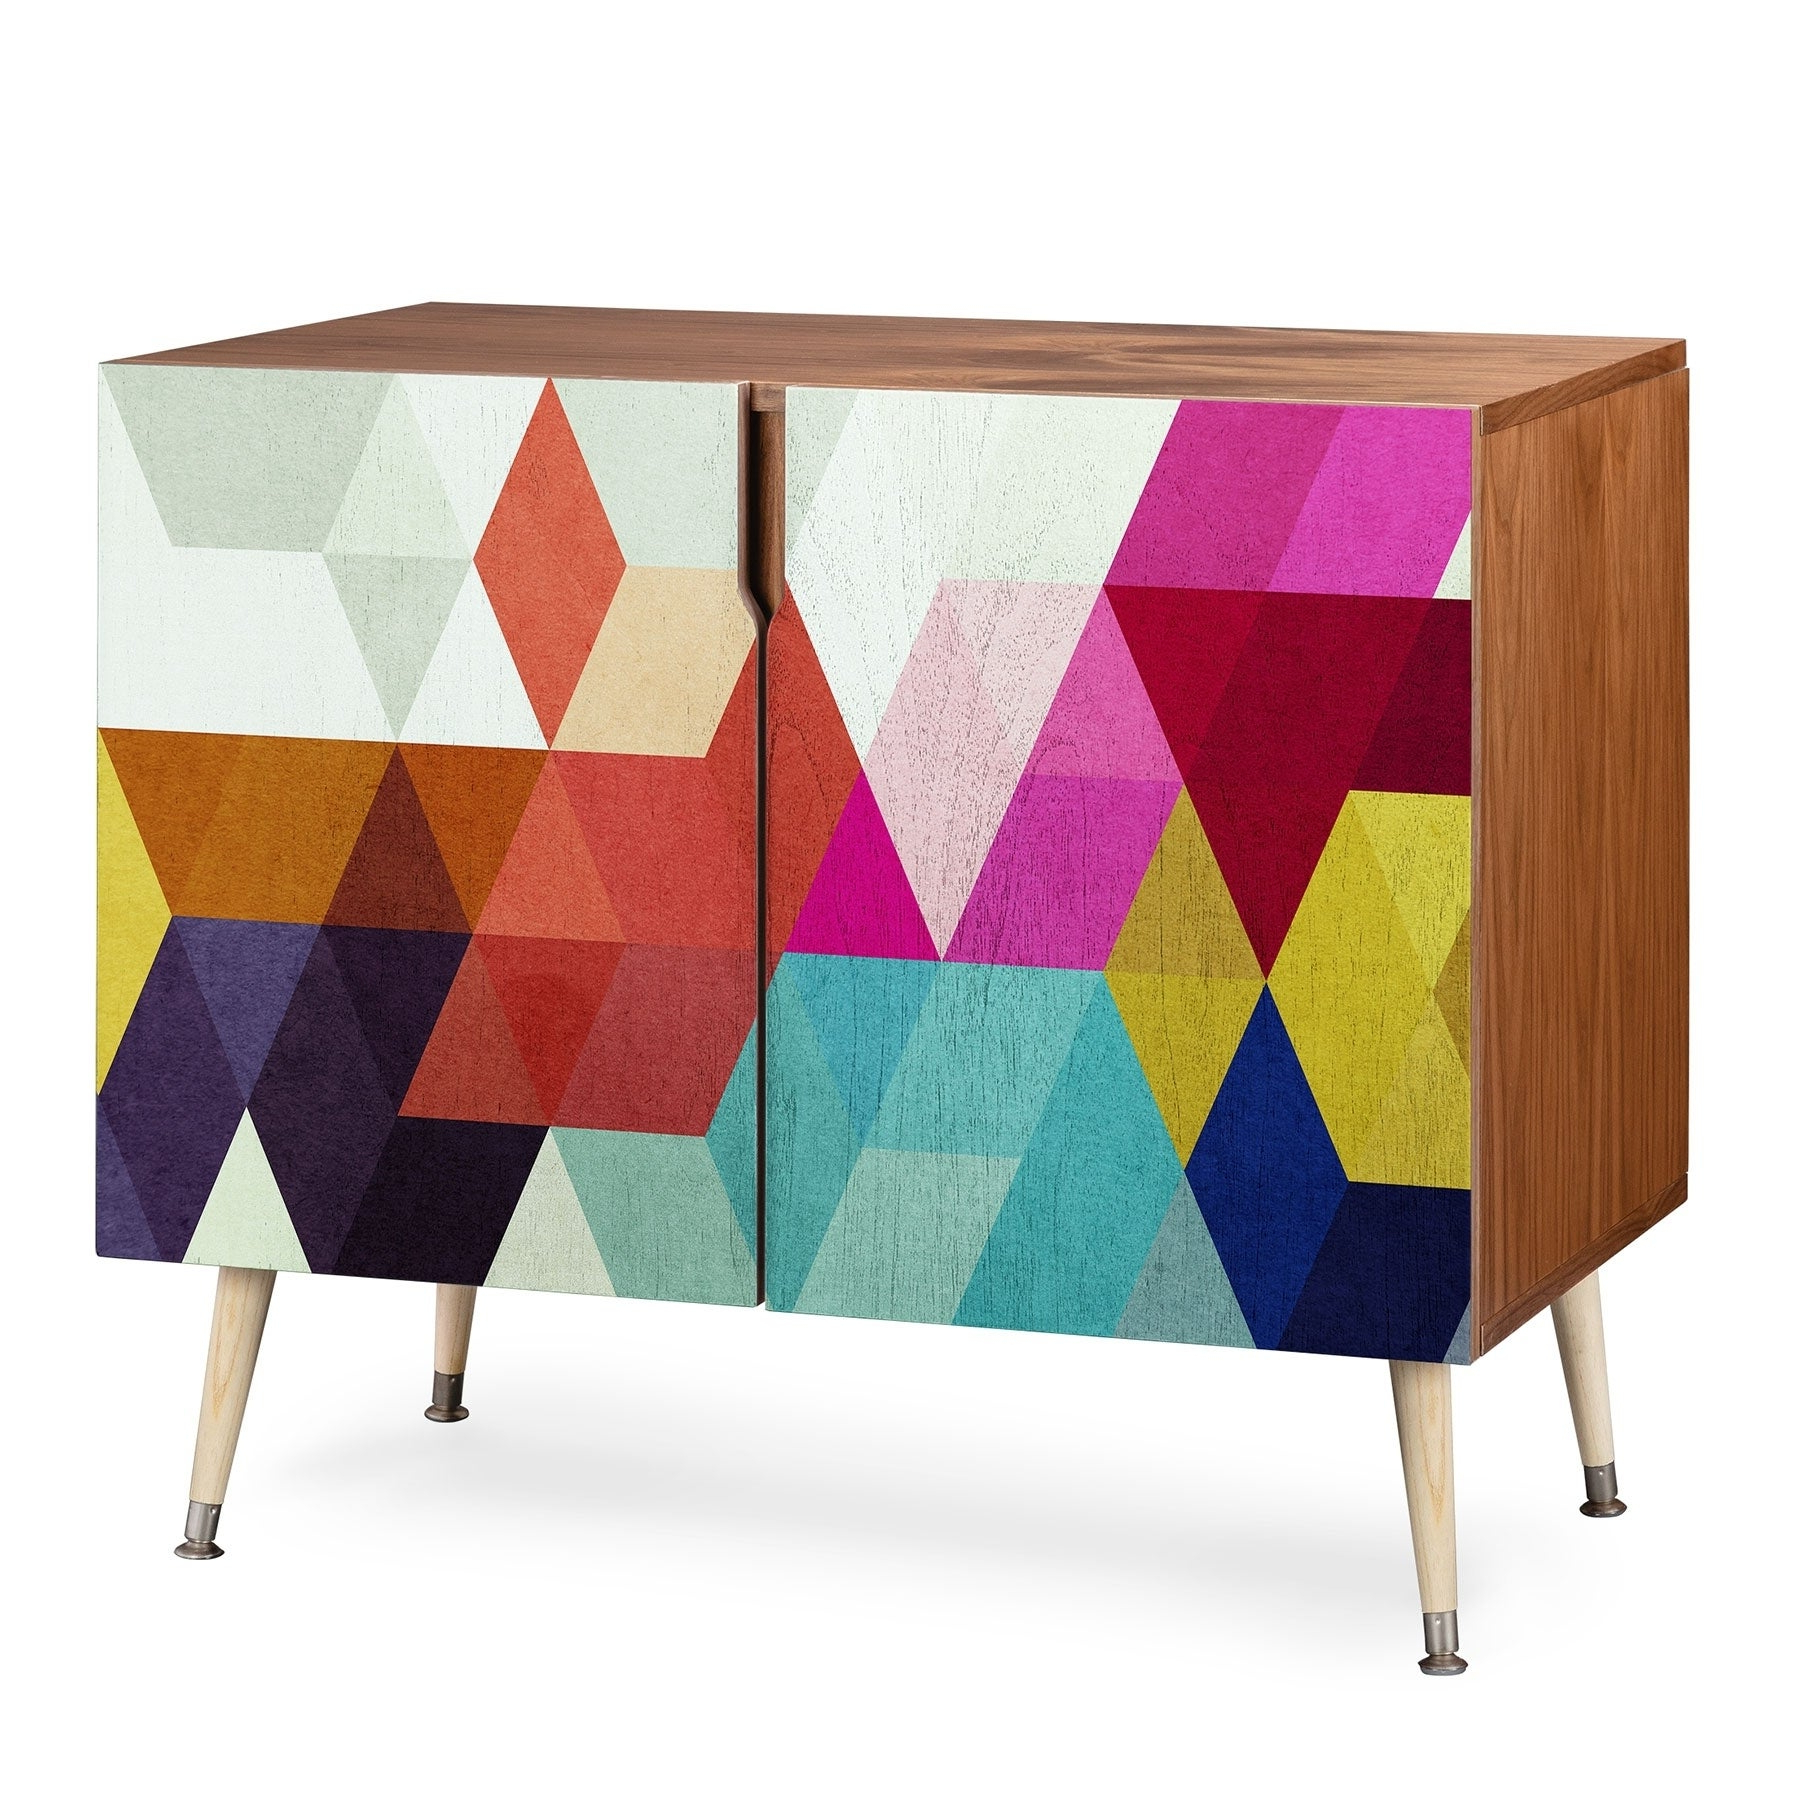 Deny Designs Modele 7 Geometric Credenza (Birch Or Walnut, 3 Leg Options) In Multi Colored Geometric Shapes Credenzas (View 3 of 20)